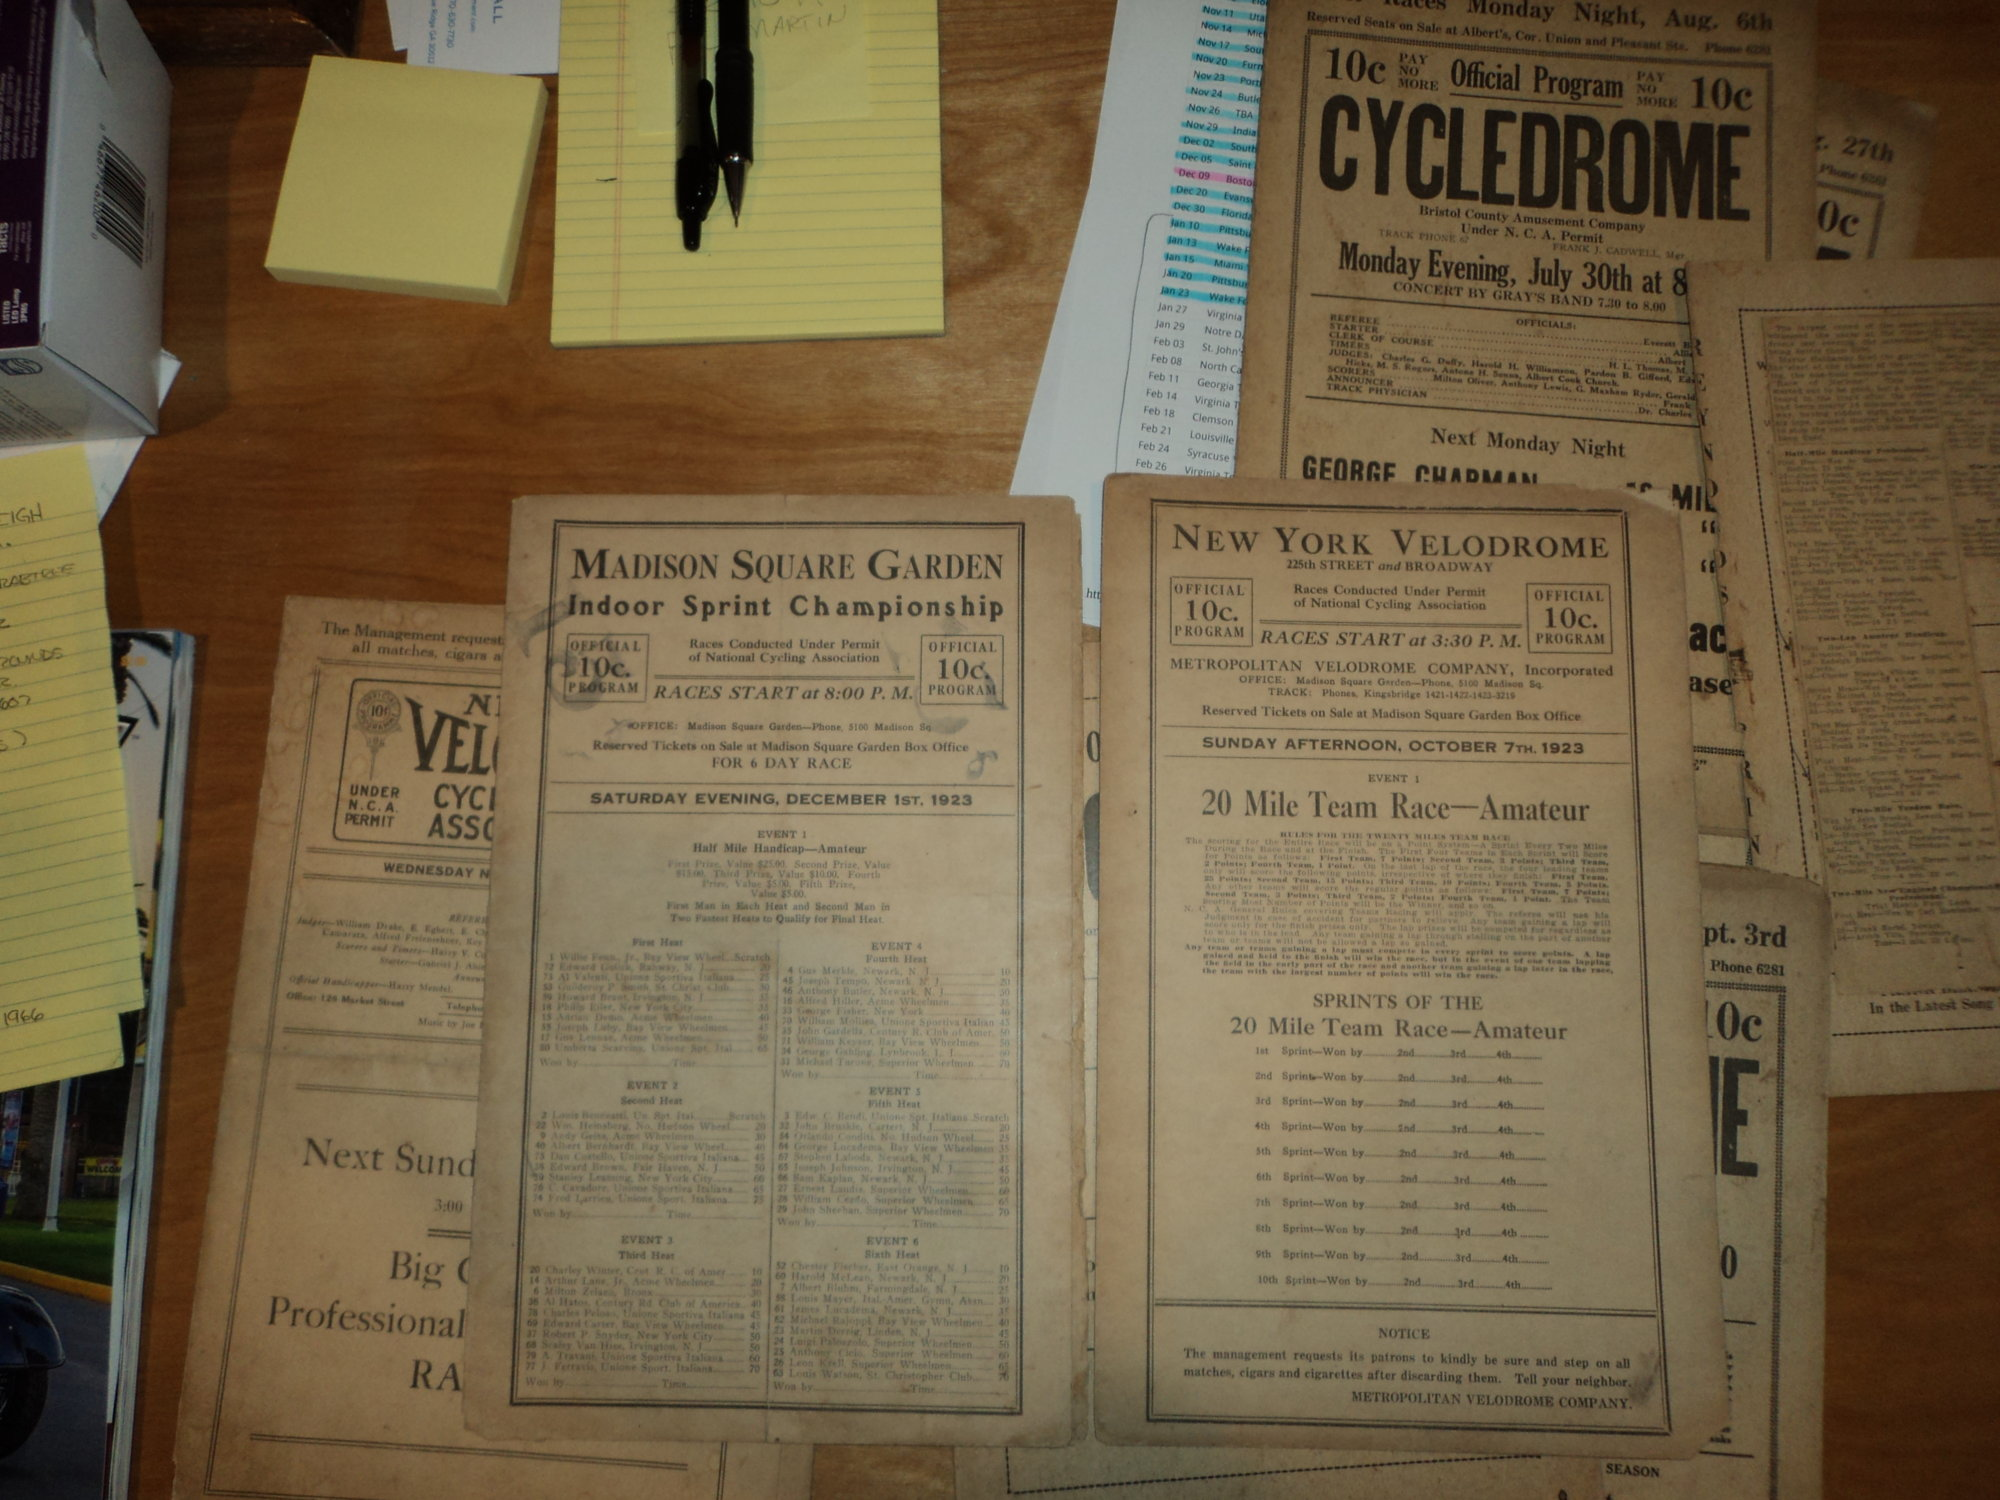 Checking History on Cycledrome Racing | The Classic and Antique ...